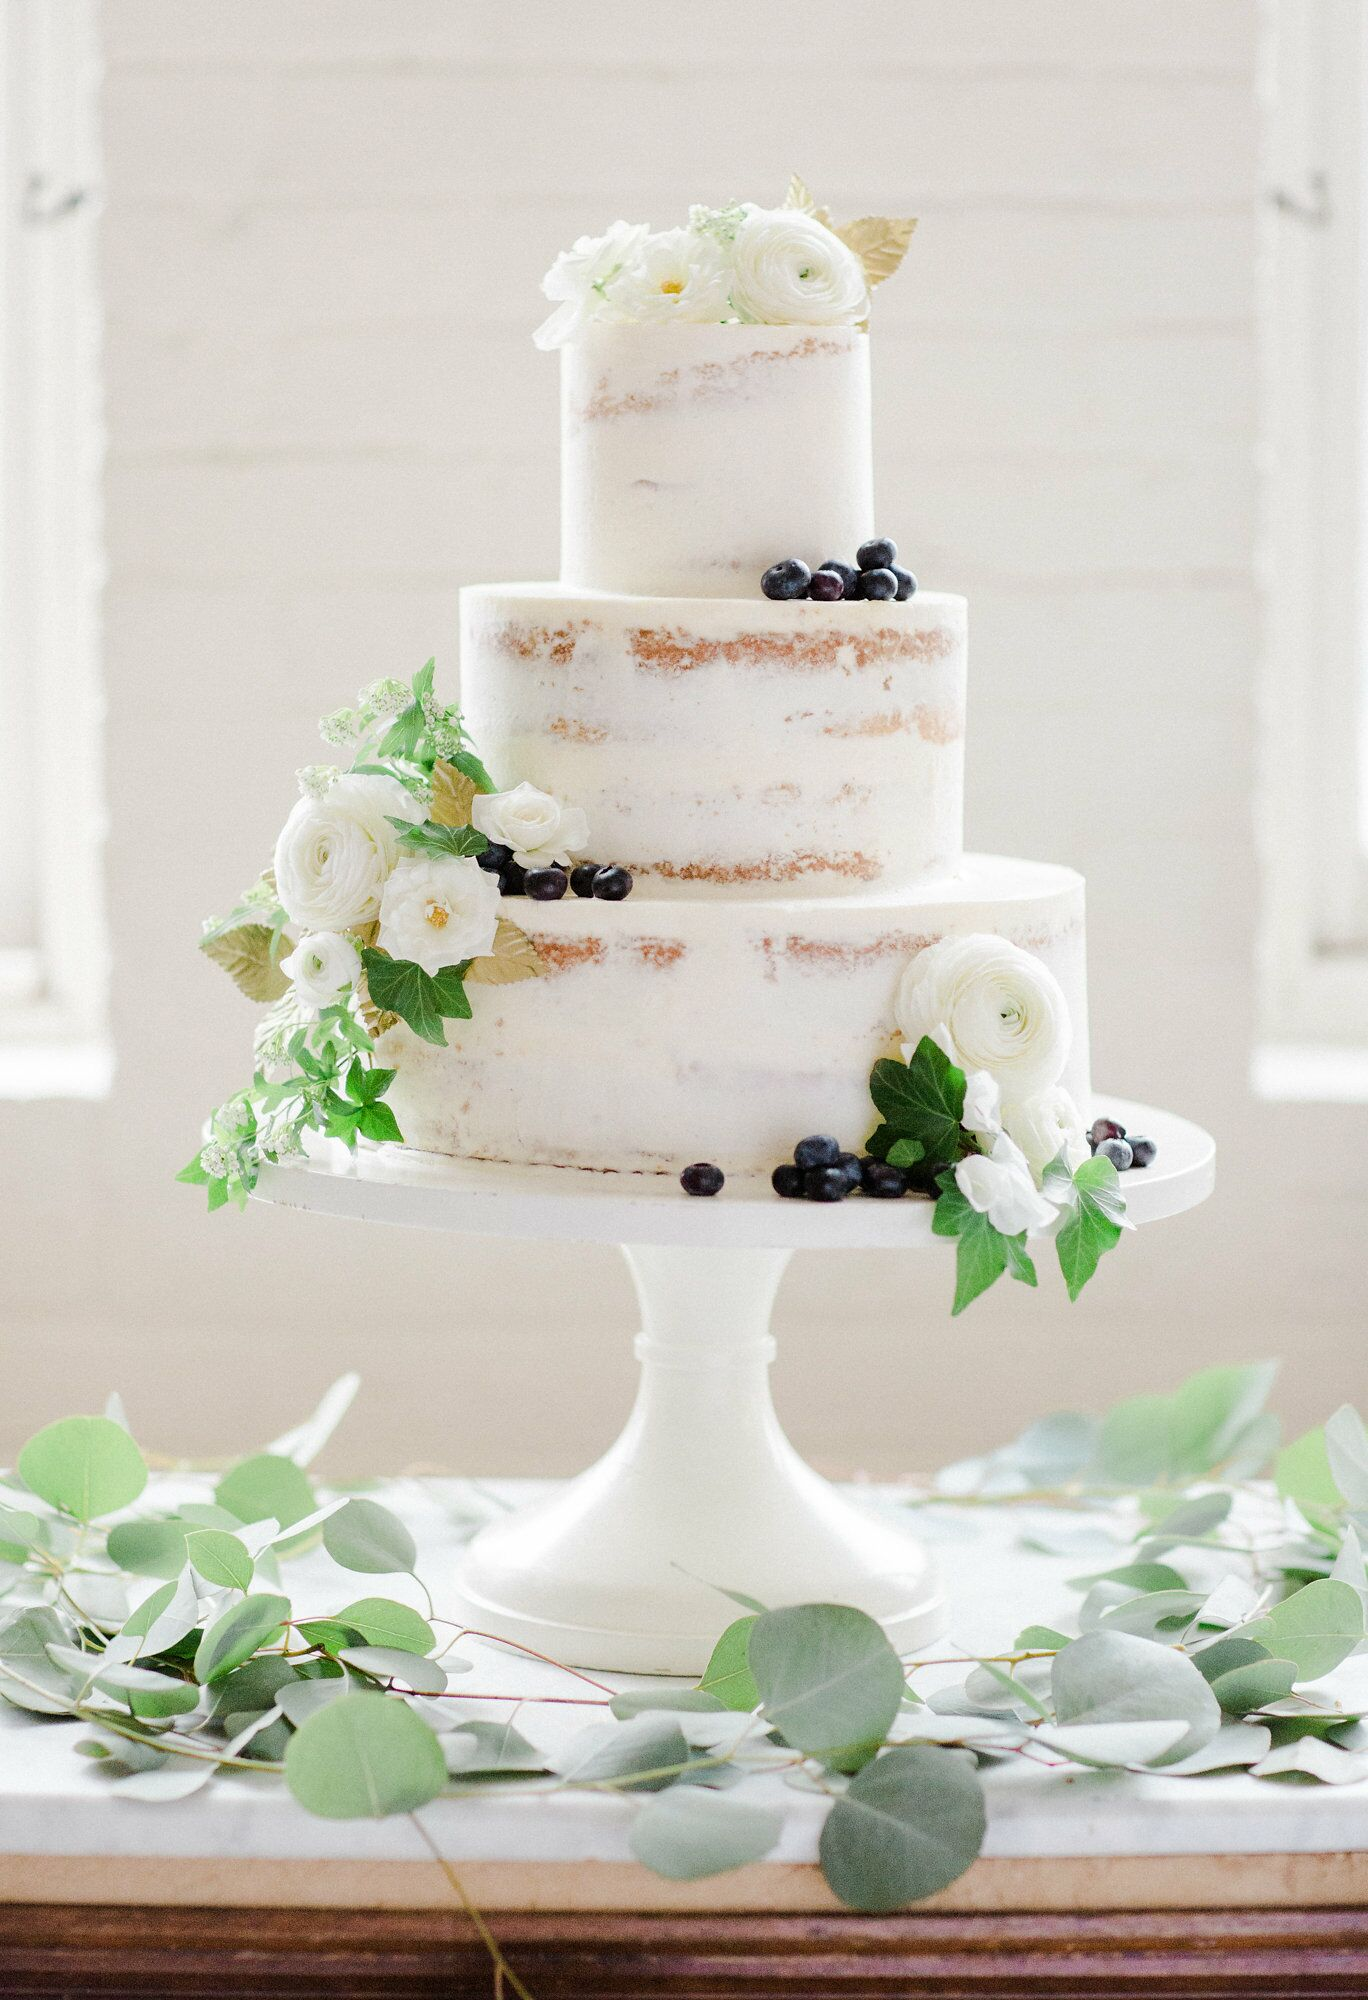 Wedding Cake Bakeries in Boston, MA - The Knot